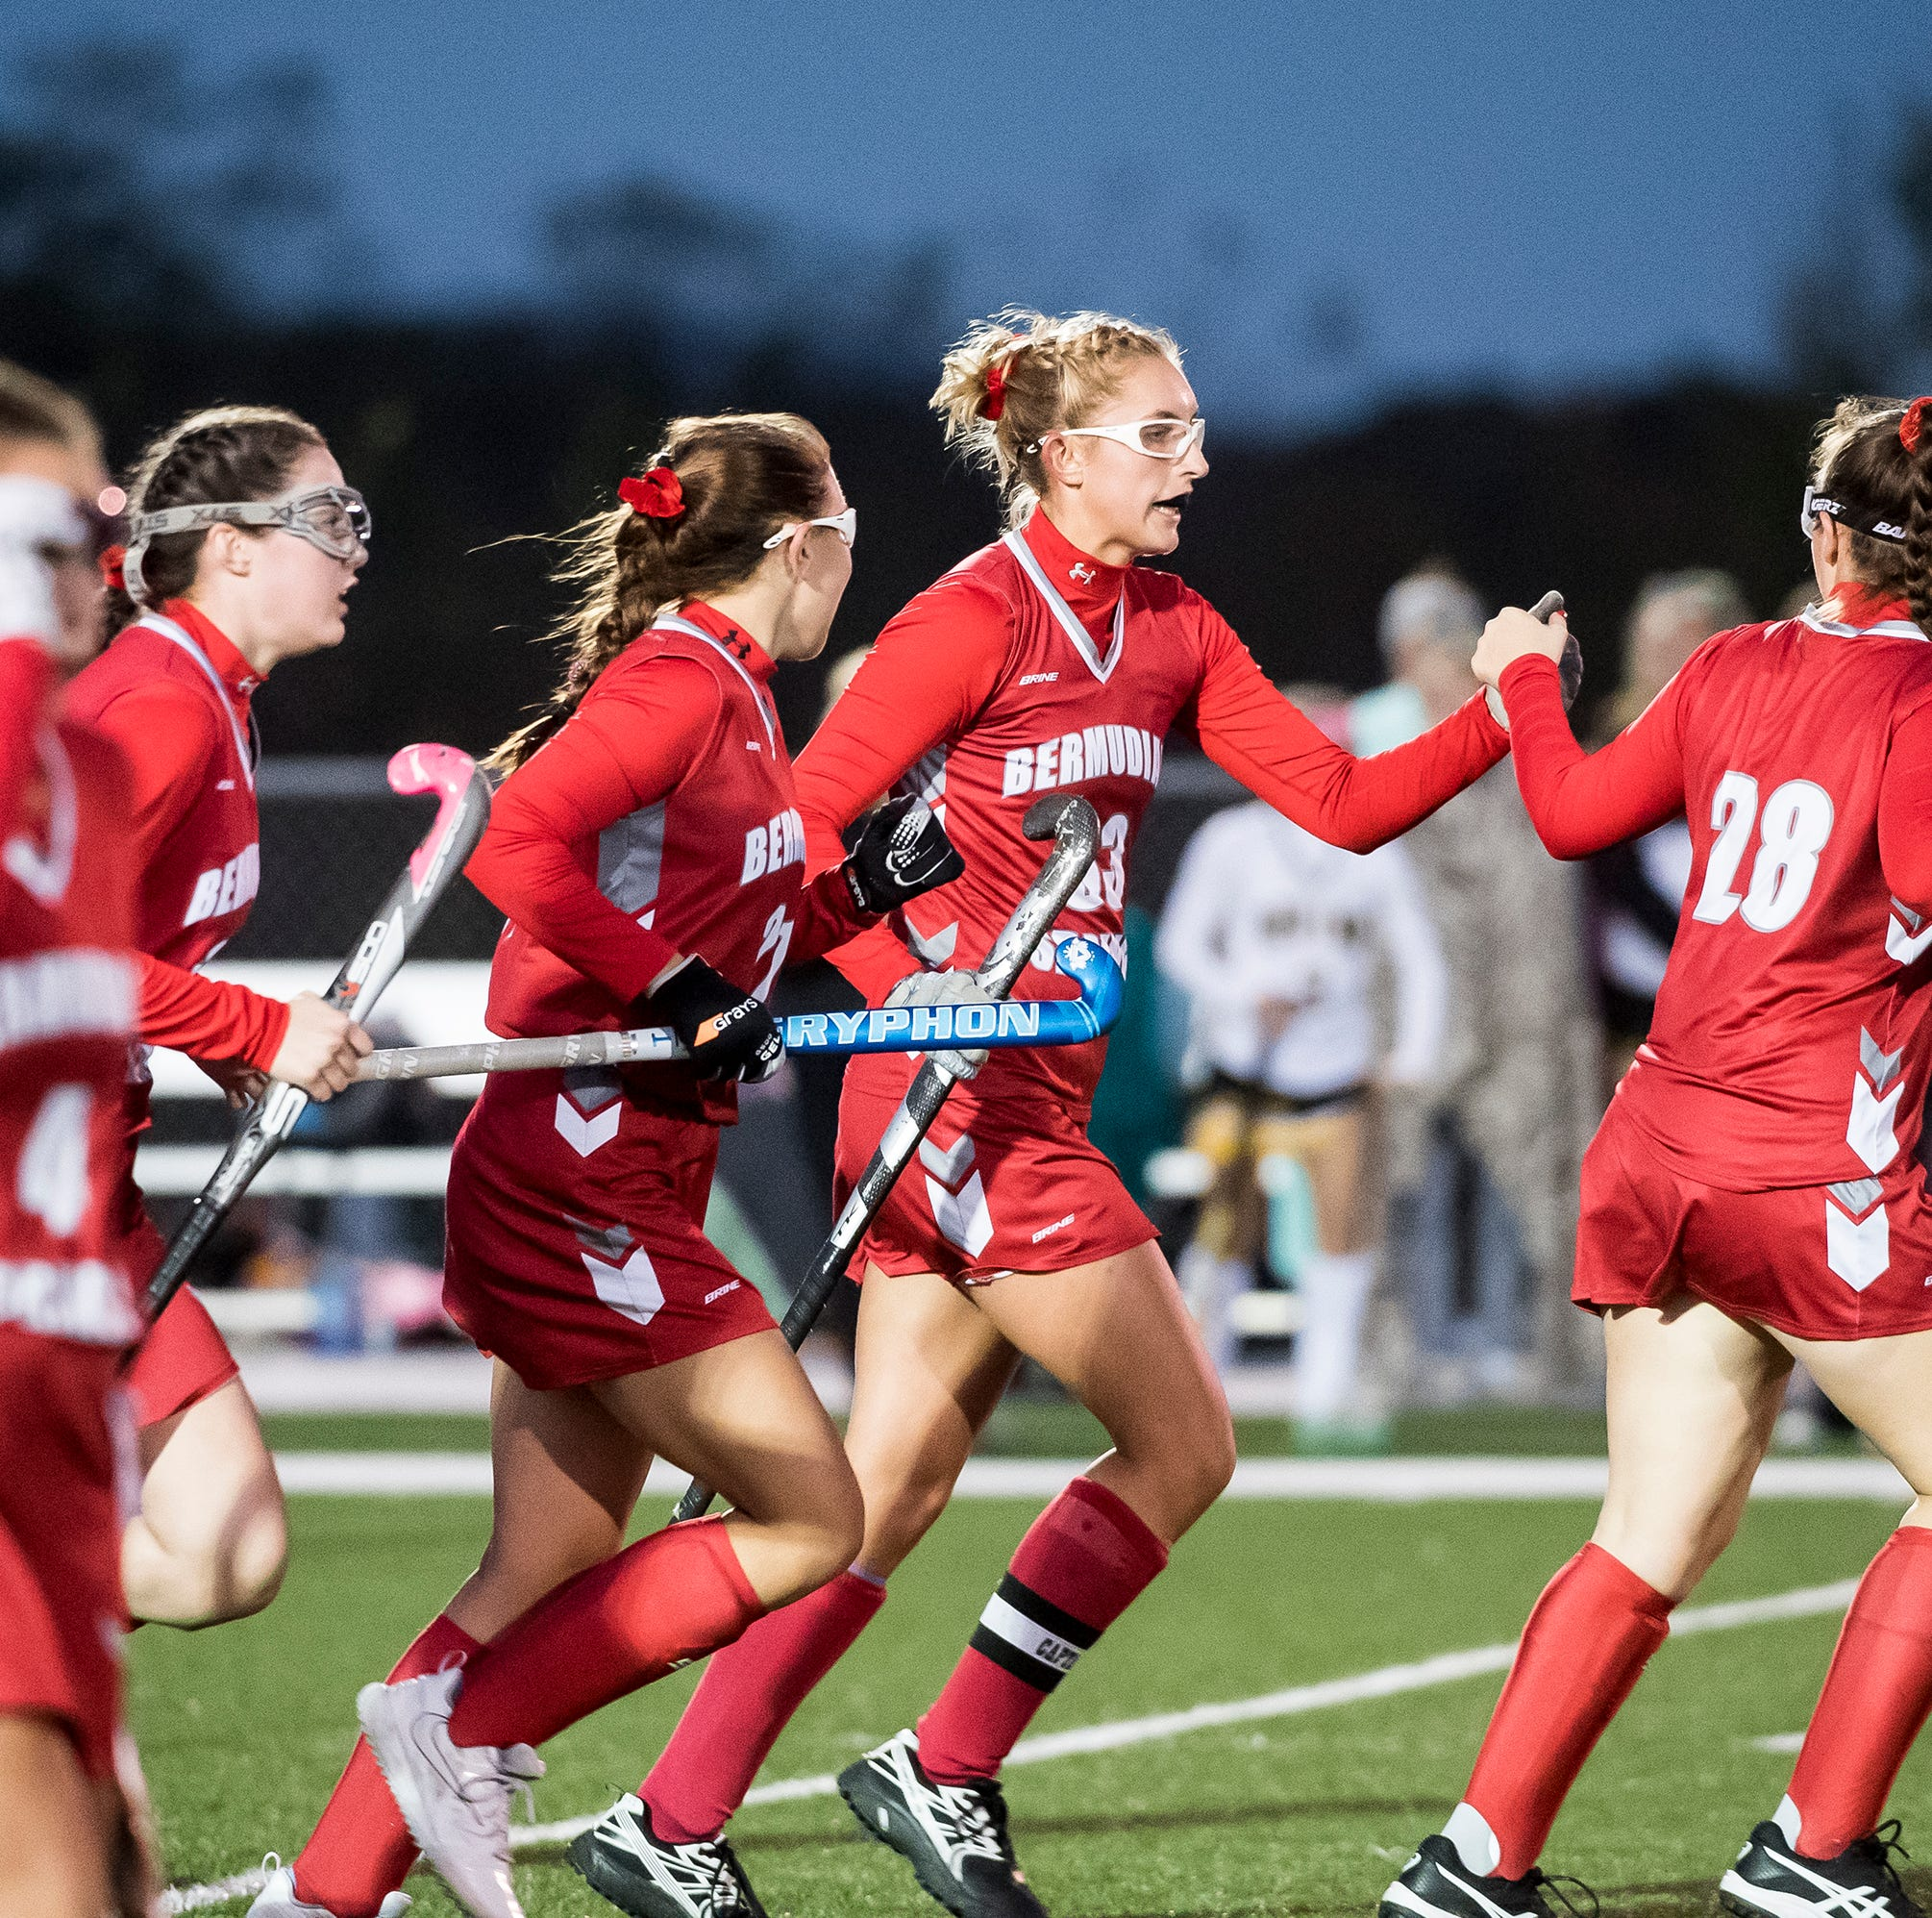 Bermudian Springs, Central York to play for YAIAA field hockey championship